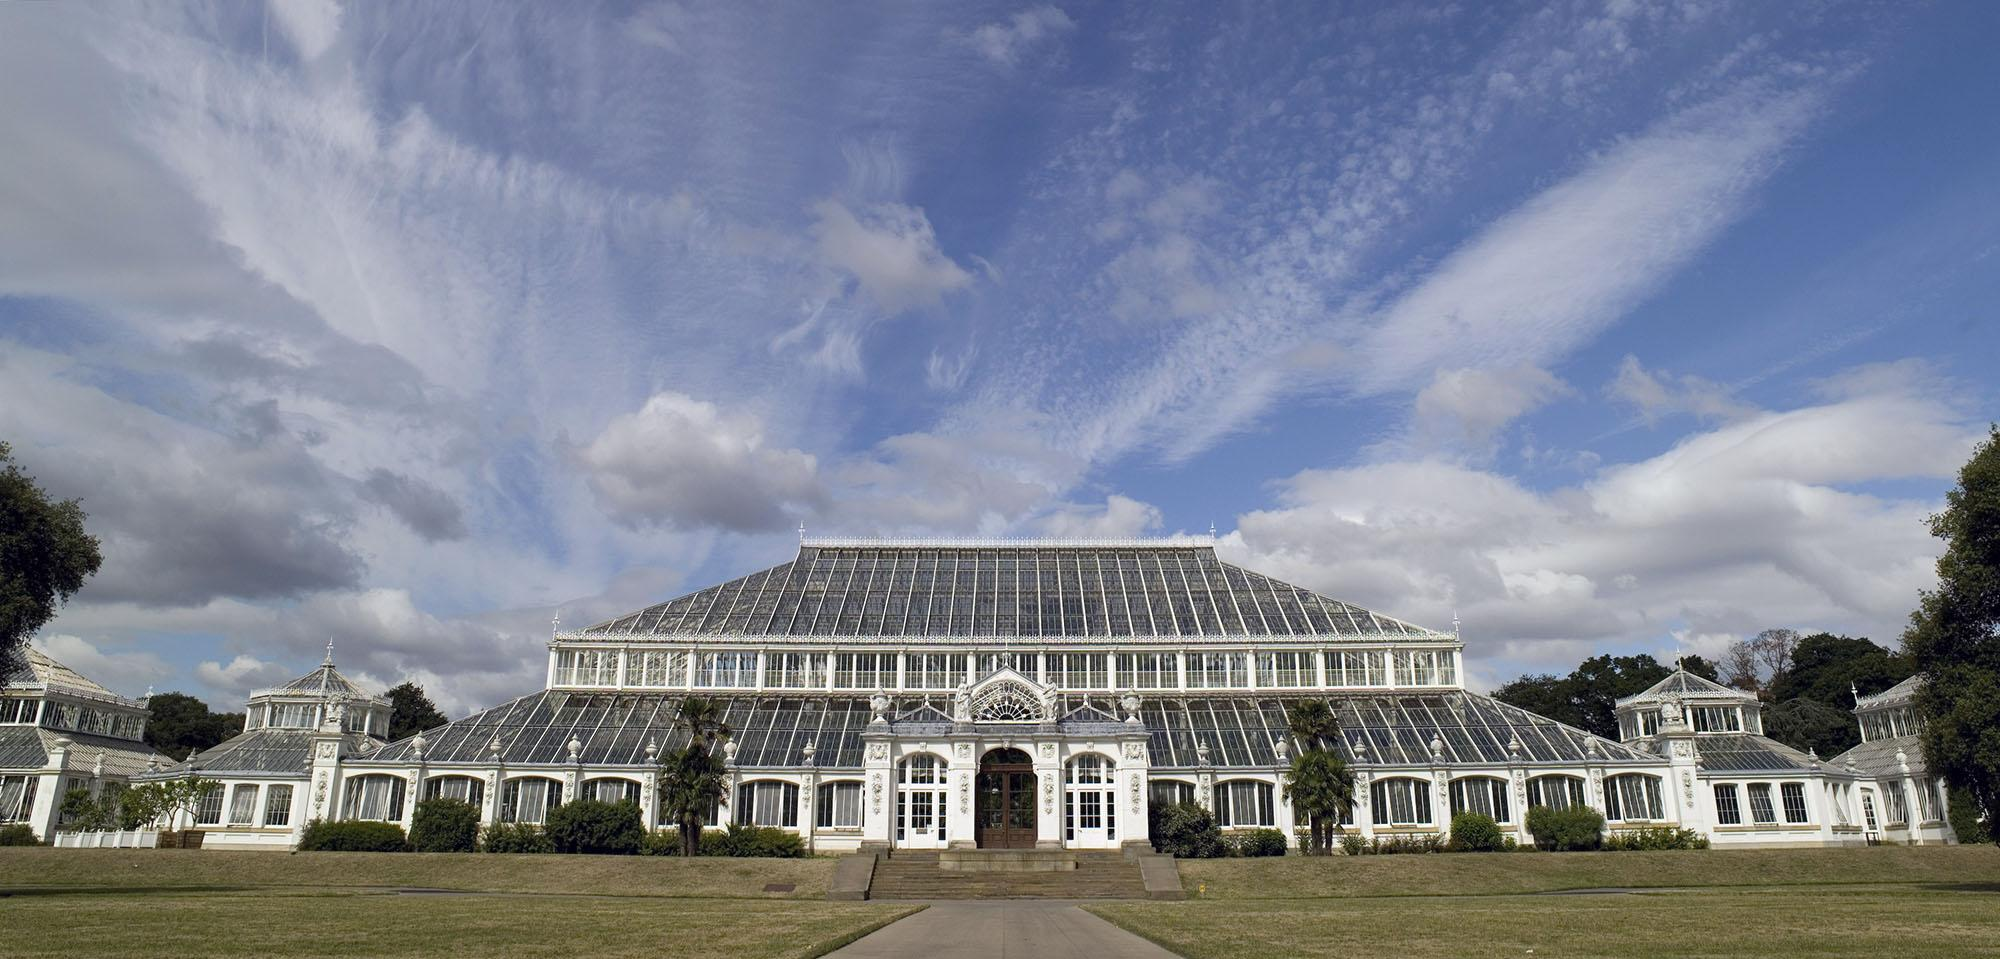 The Temperate House is home to 10,000 plants, many of which are rare and threatened in their natural environment. – © RBG Kew